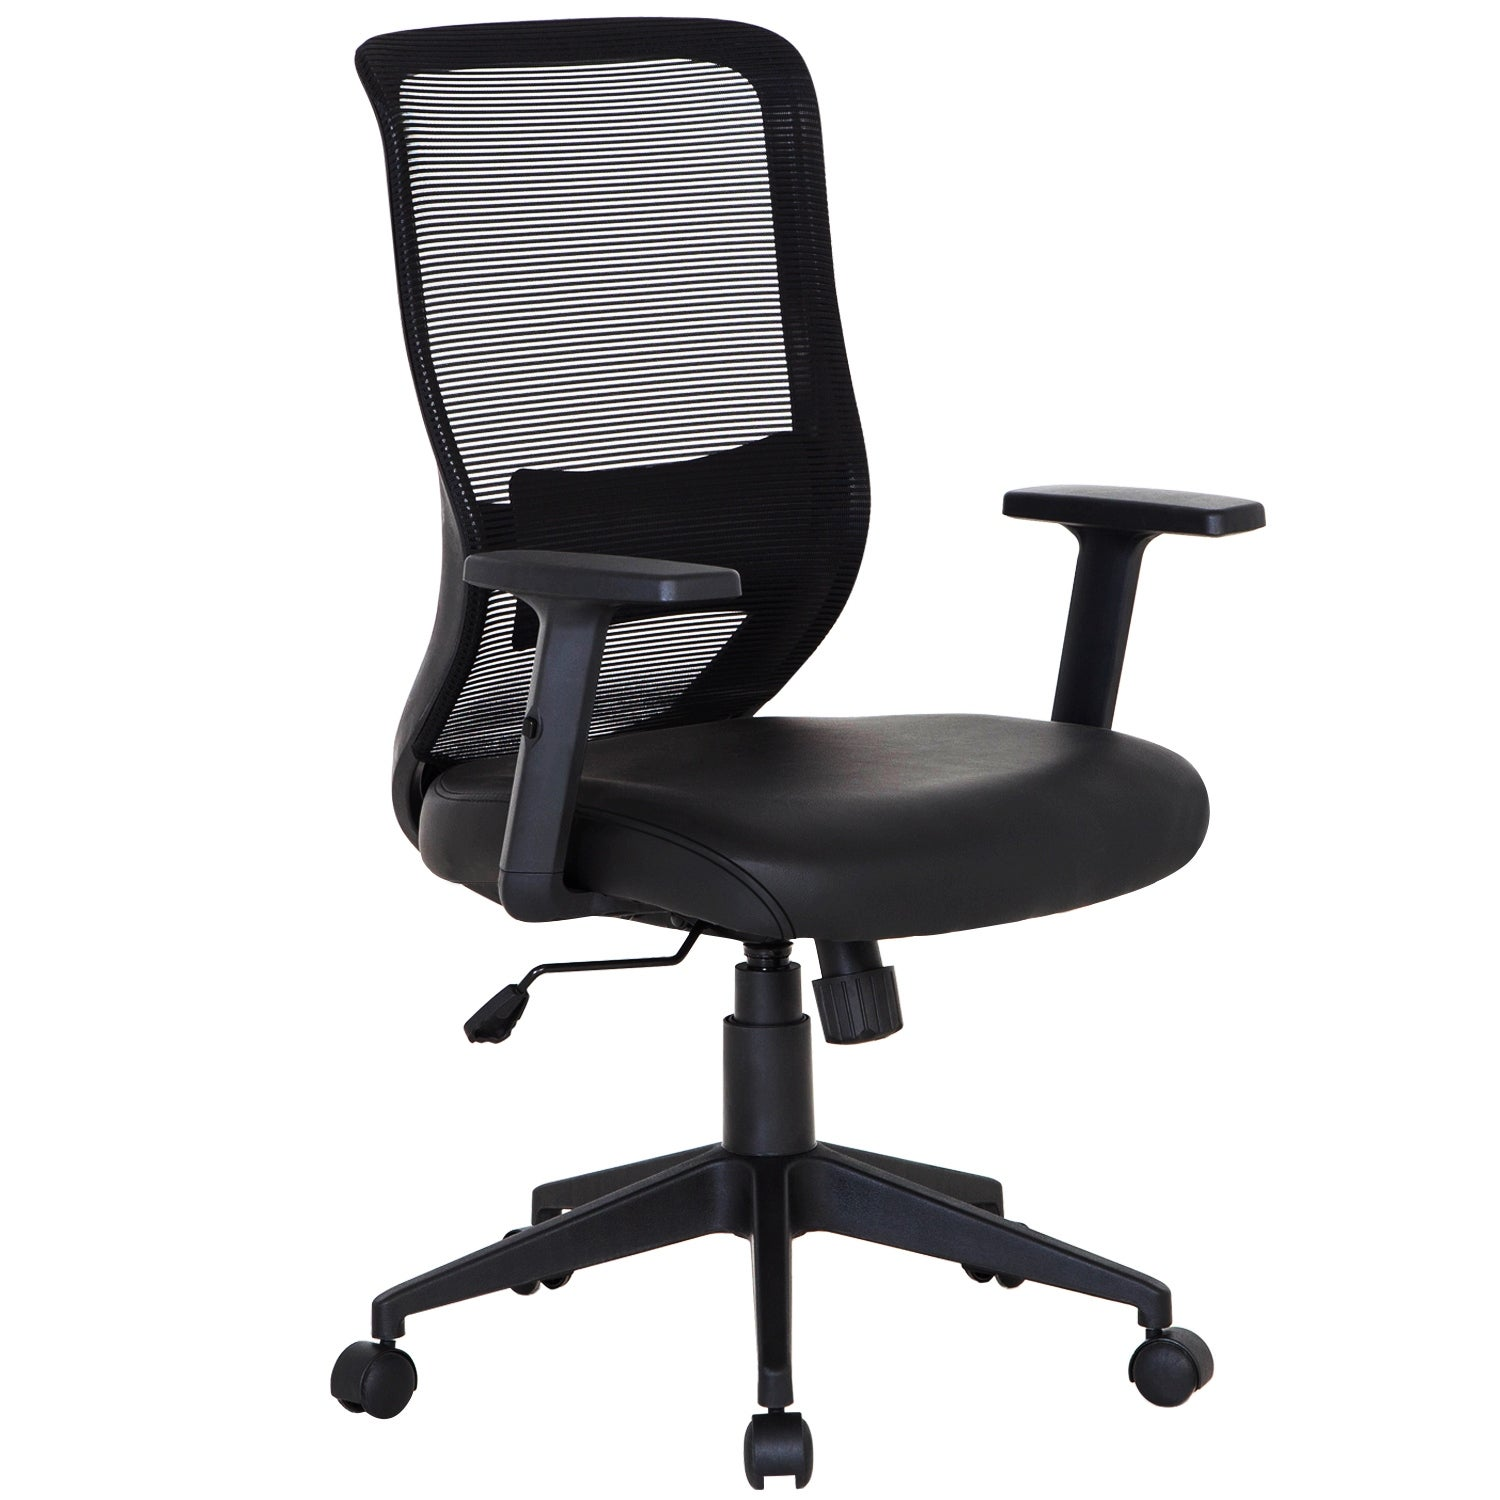 Office Chair Pu Surface Cushion Adjustable Swivel Mesh Desk Chairs